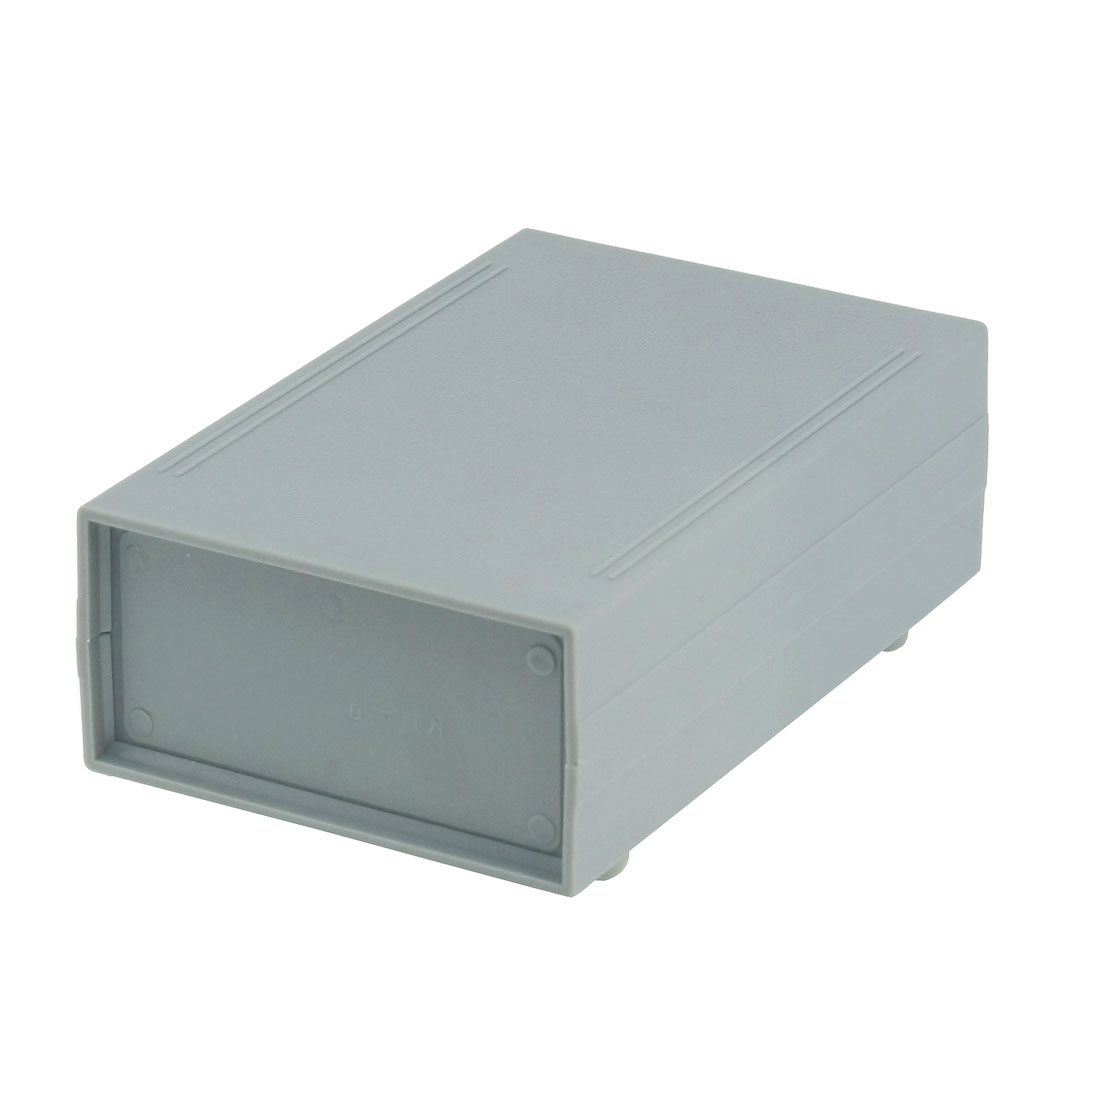 150mm x 98mm x 50mm Plastic Enclosure Case DIY Junction Box